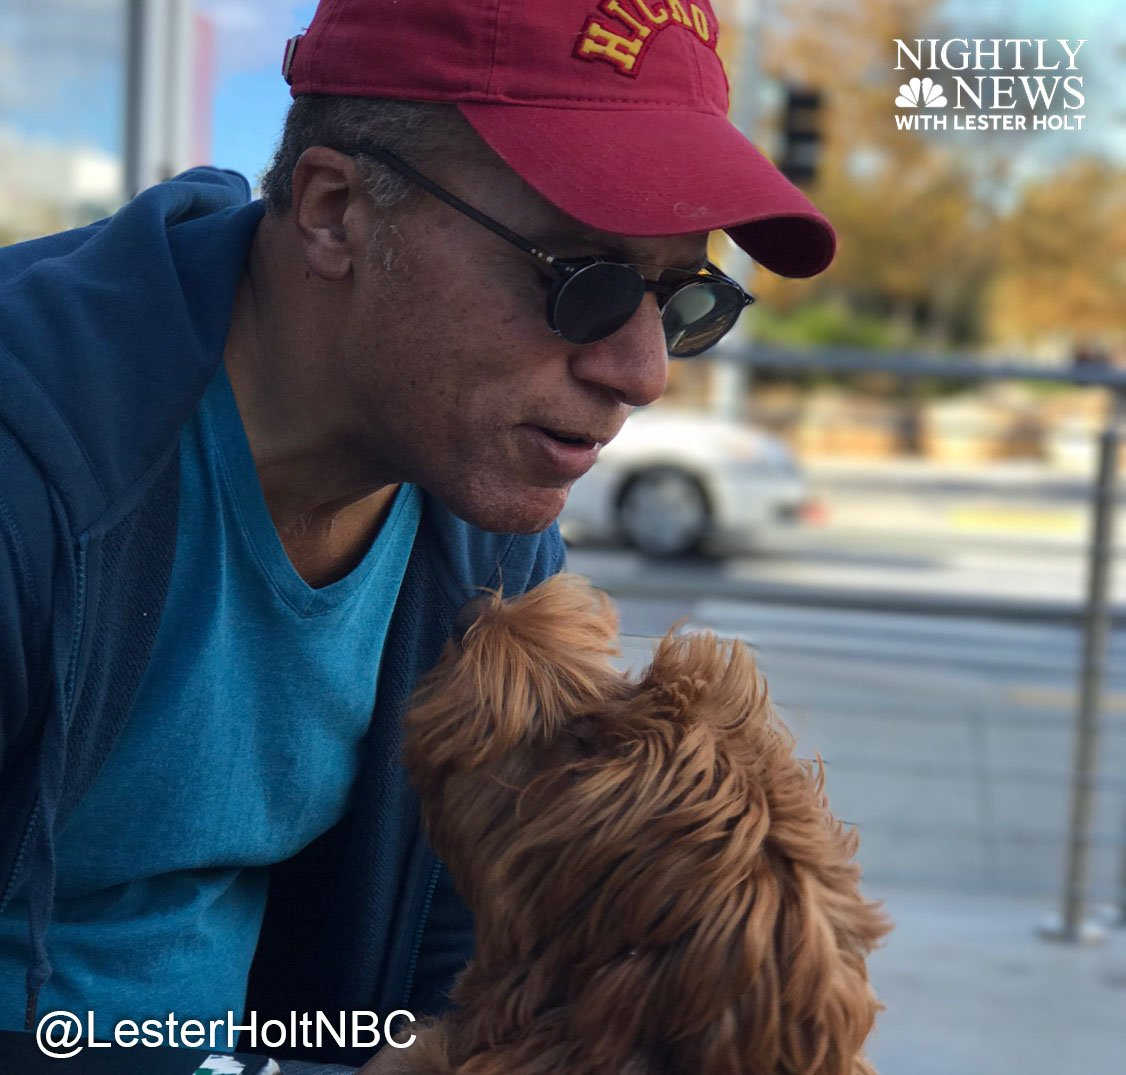 Happy #NationalPuppyDay from Lucy and @LesterHoltNBC!